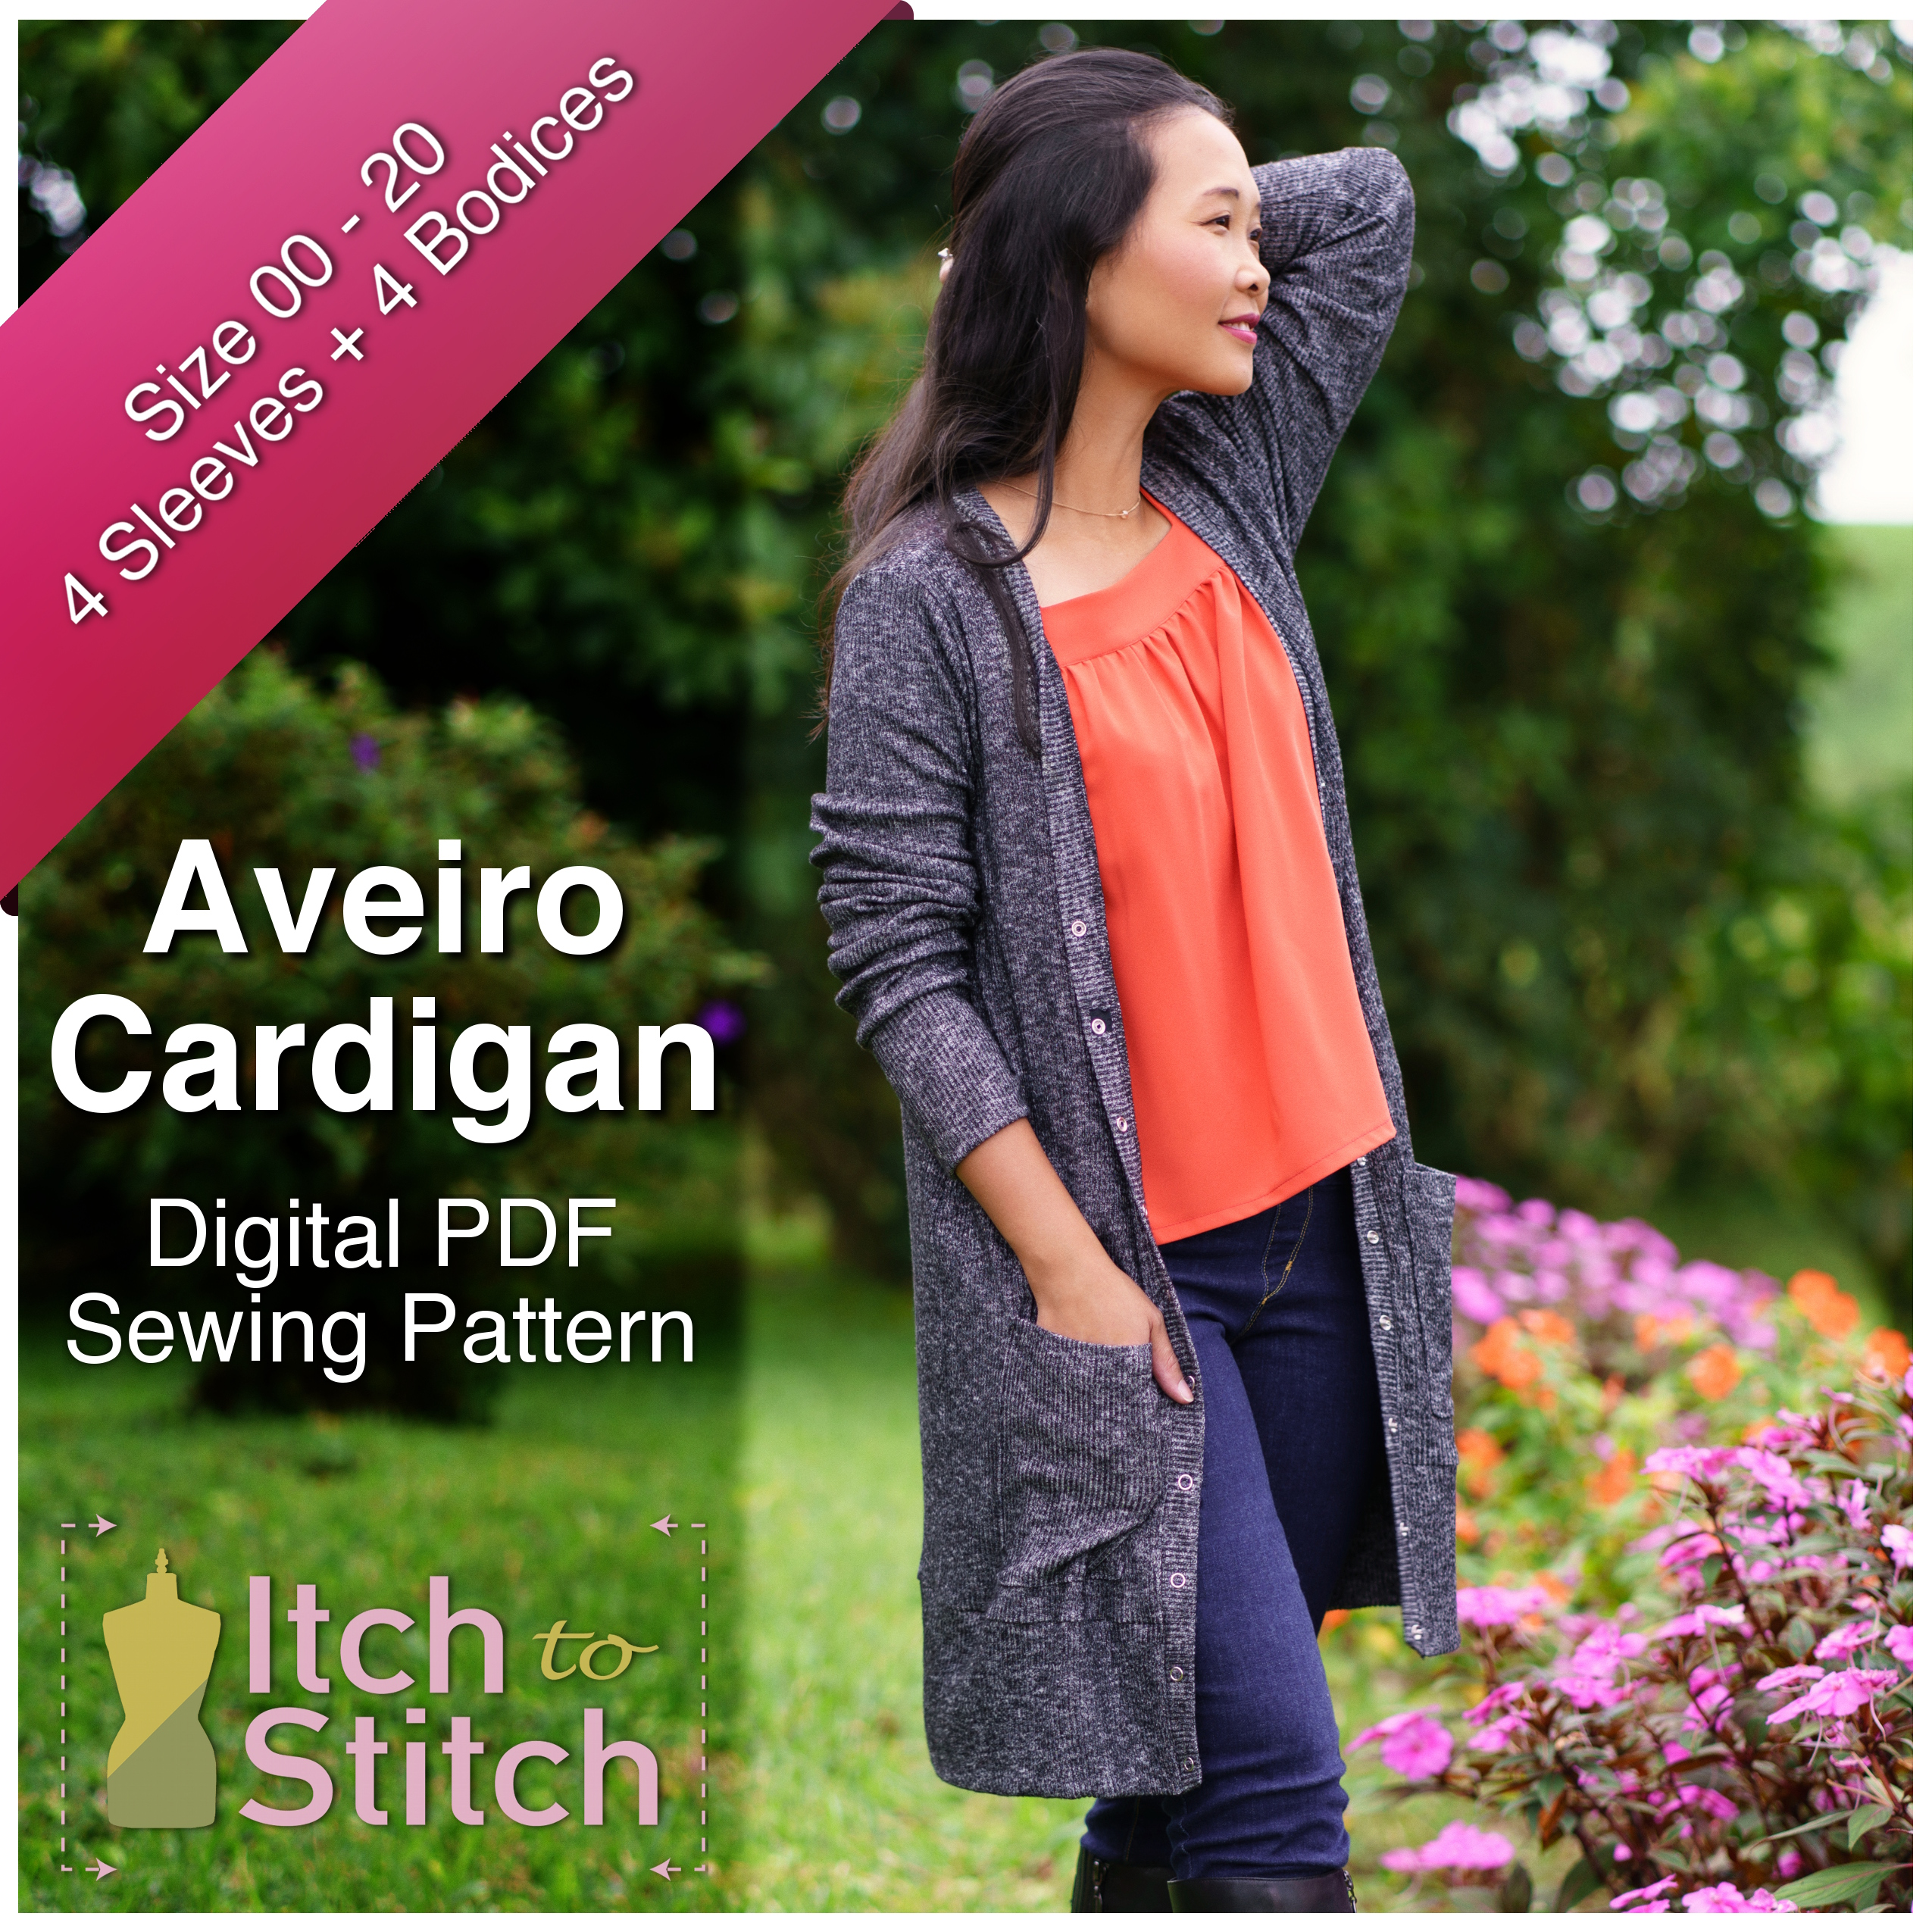 Aveiro Cardigan PDF Sewing Pattern